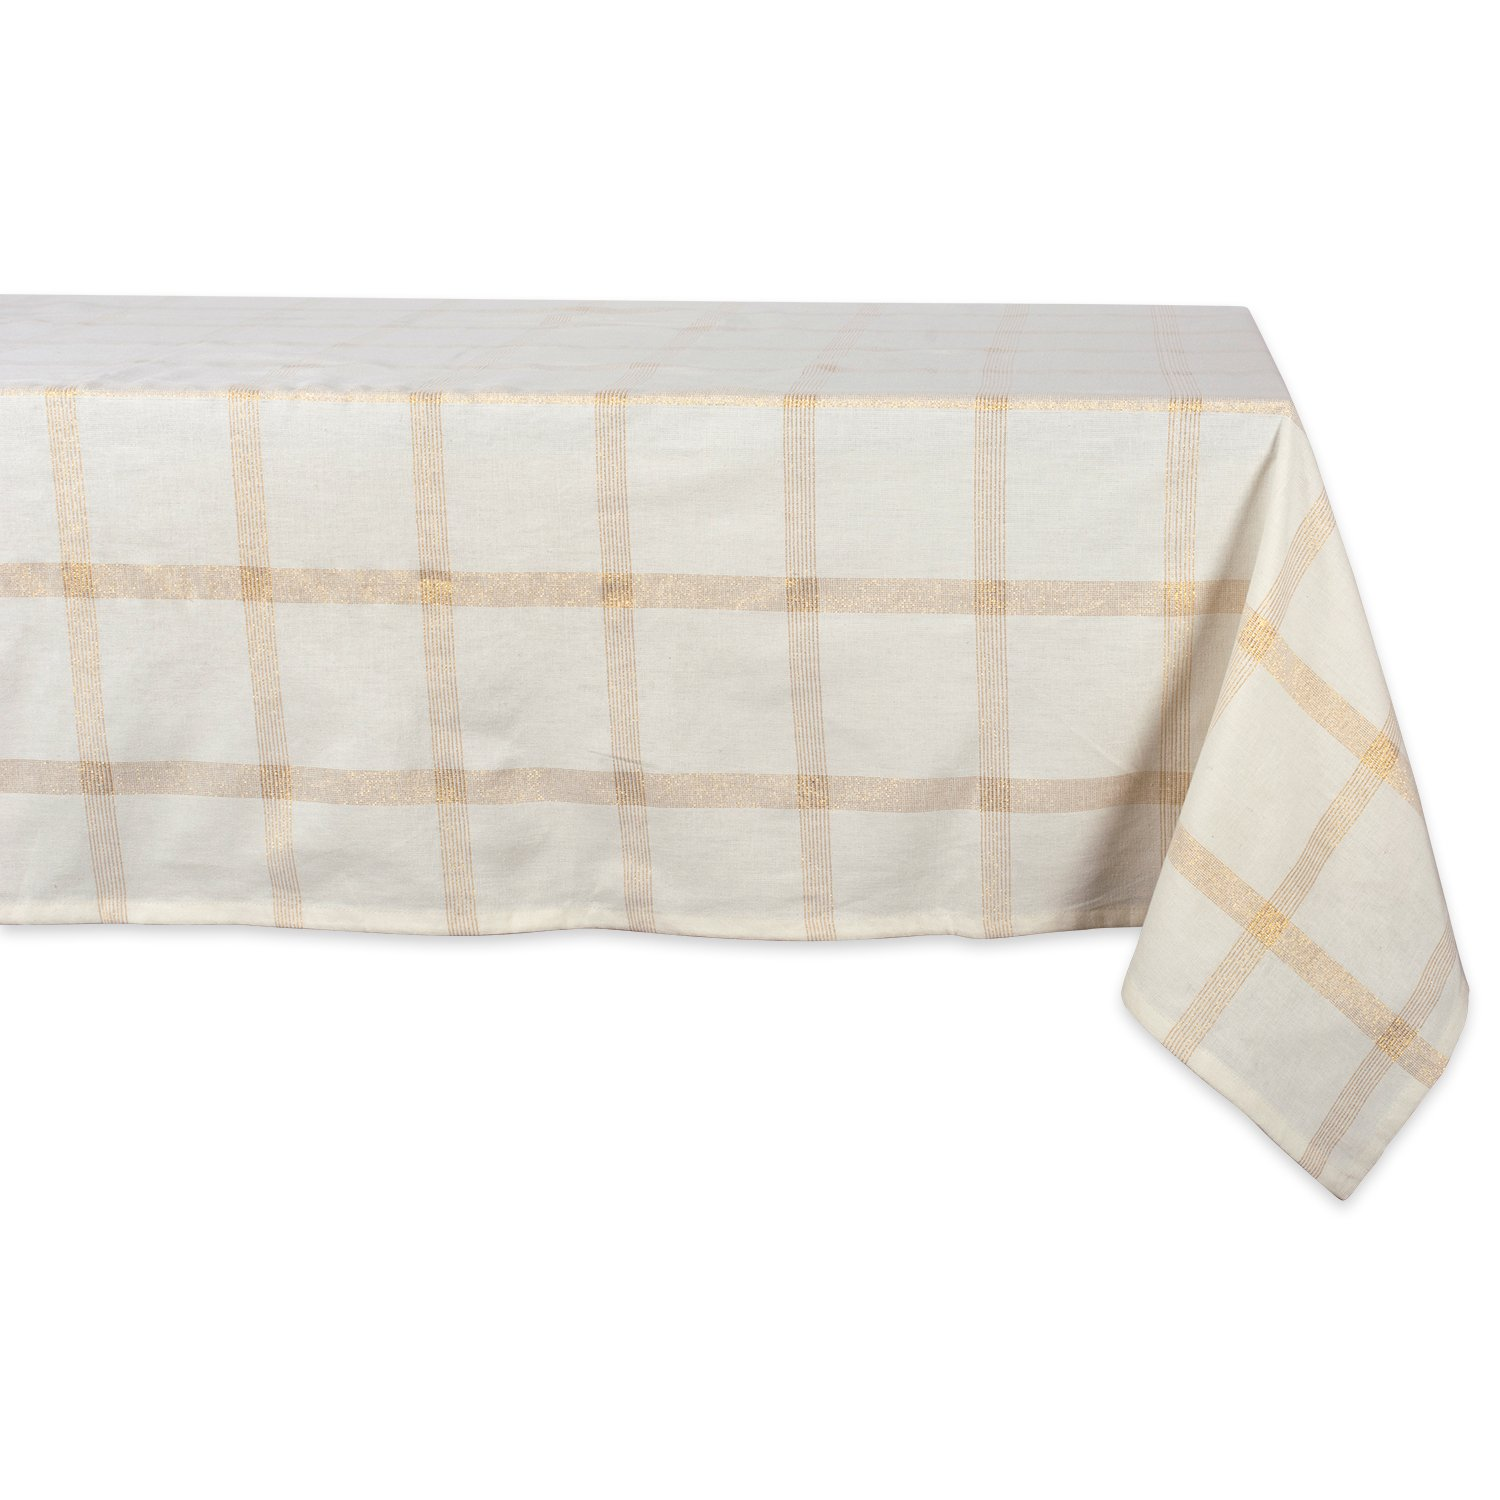 E-Living Store FBA43915 Table Runner